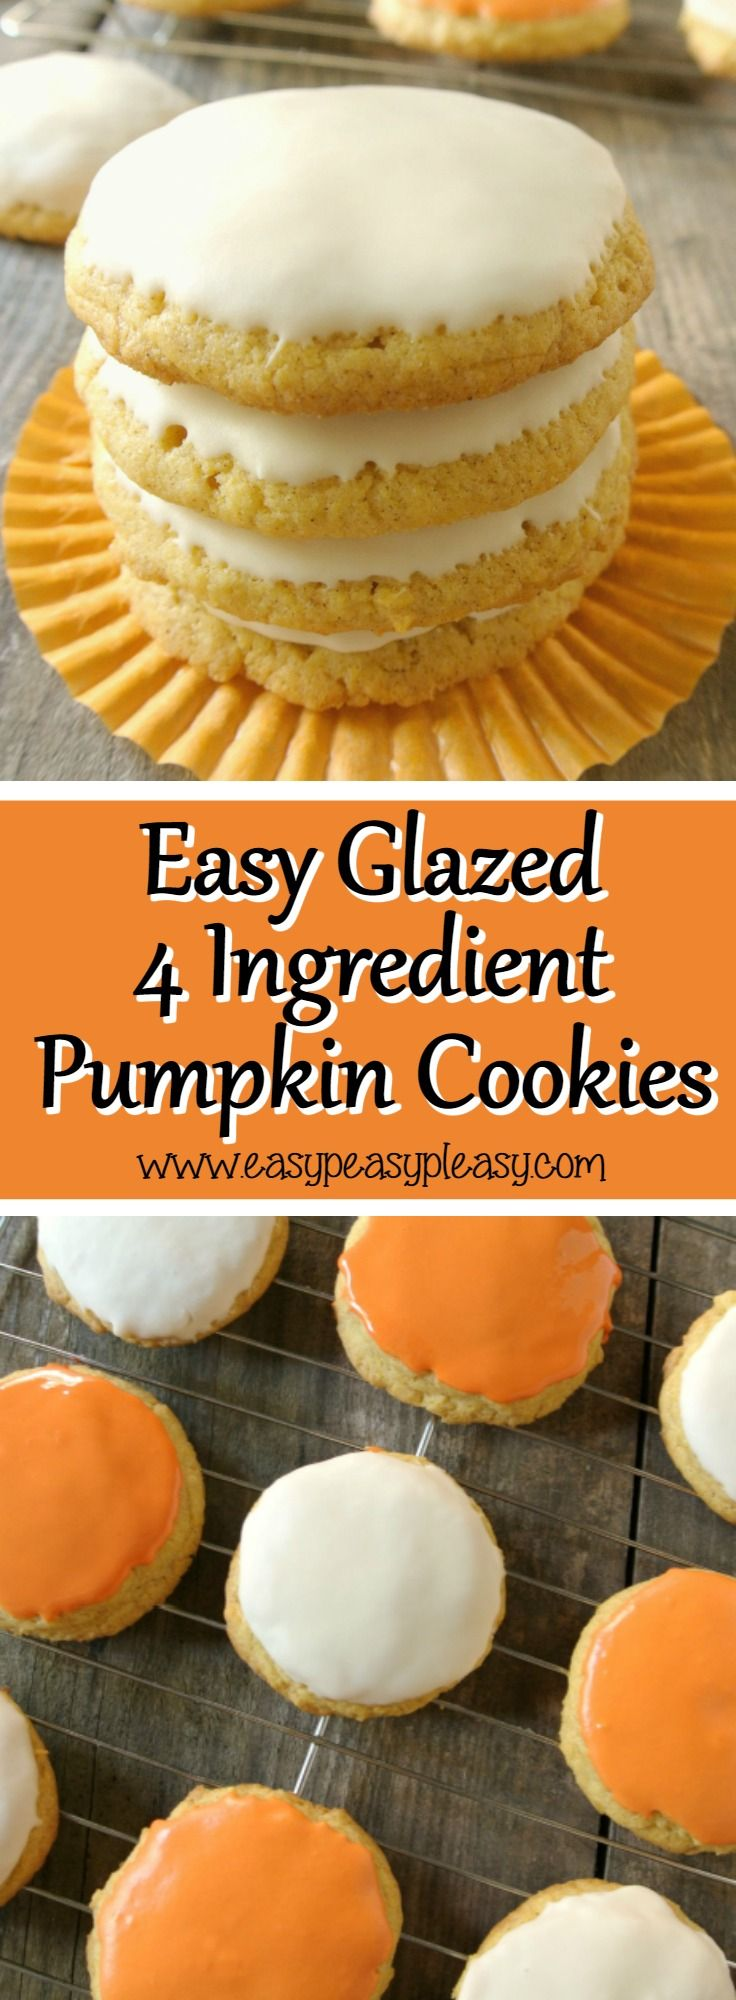 Make cookies from a box of cake mix and use store bought frosting to make a glaze with these easy glazed 4 Ingredient Pumpkin Cookies.